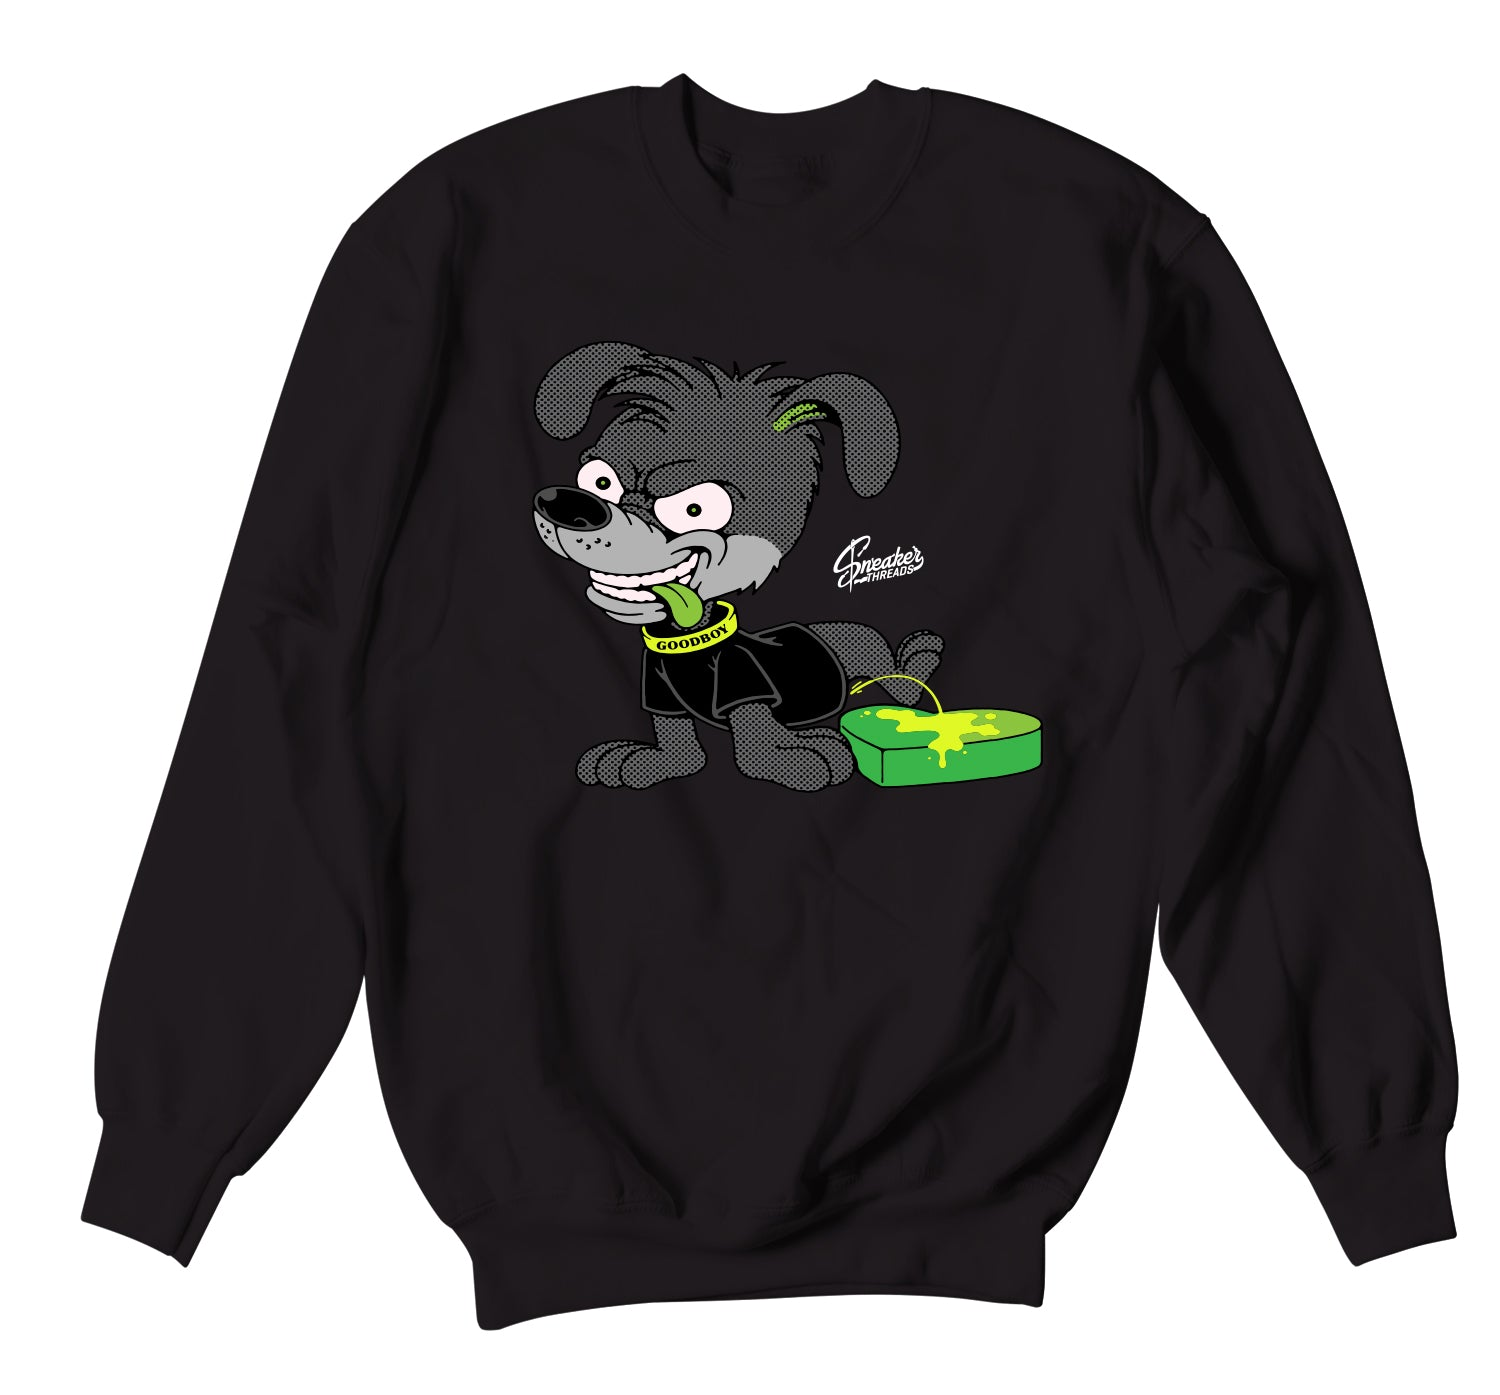 Crewneck sweaters designed to match the nike 6 grinch sneaker collection